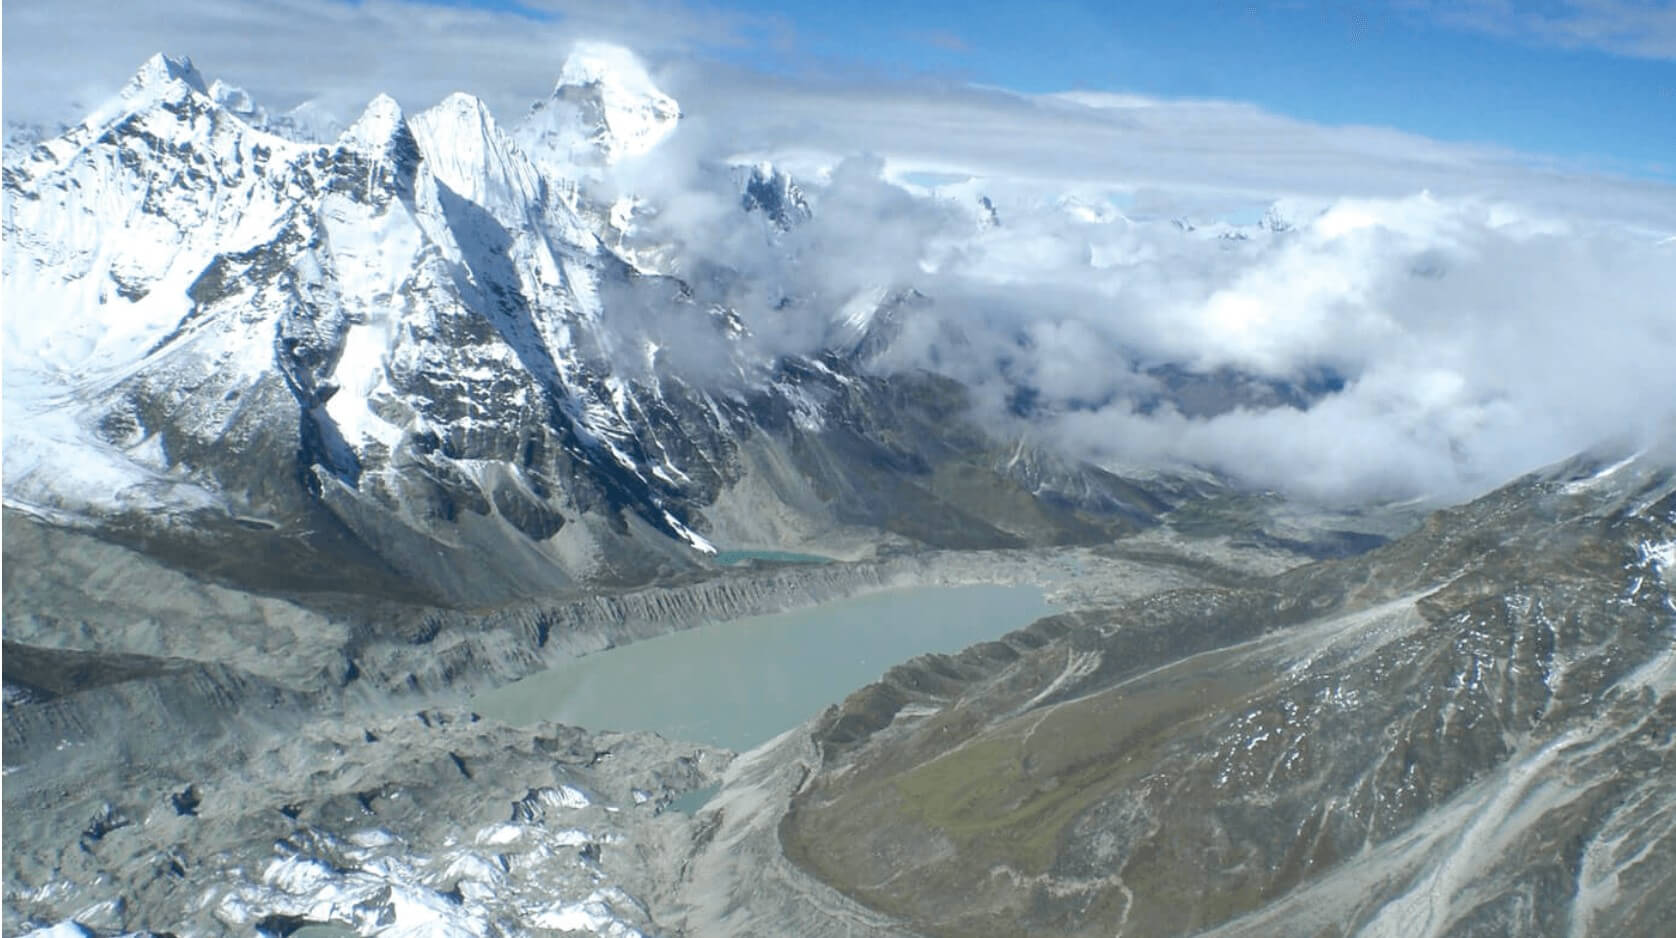 One-Third of Himalayan Glaciers Could Melt by 2100